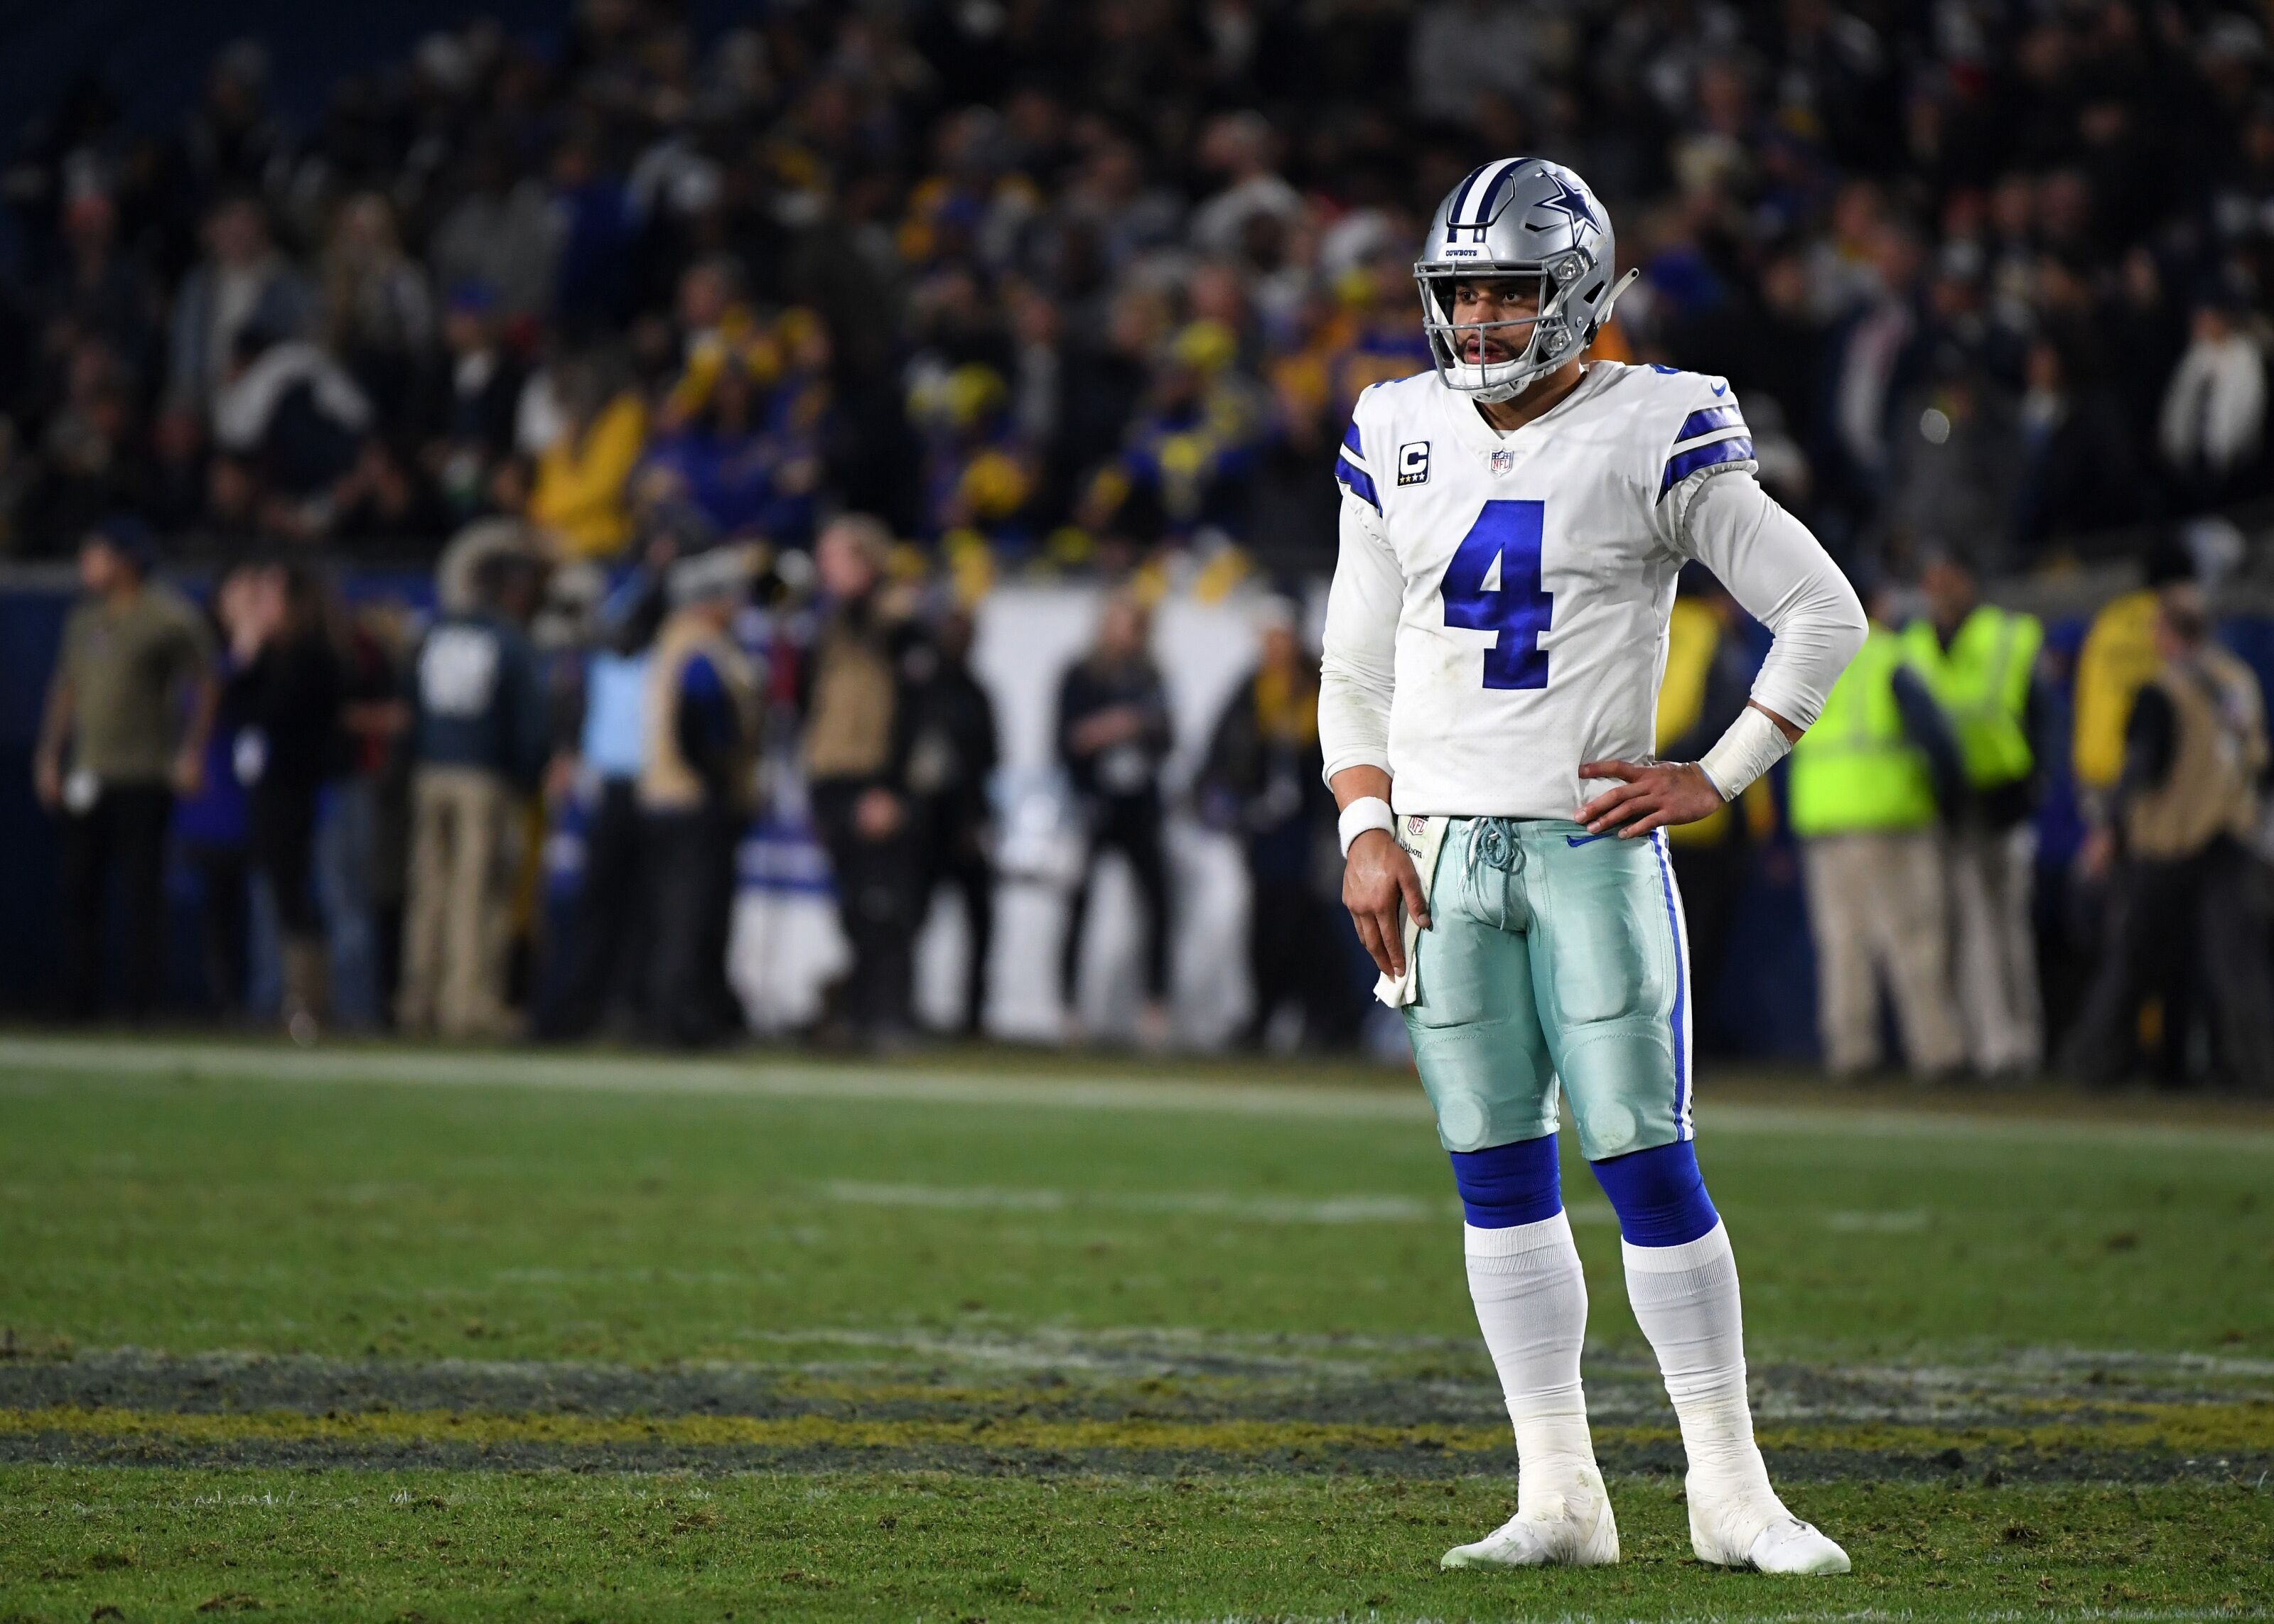 Dallas Cowboys: Why is there so much anger towards Dak Prescott?